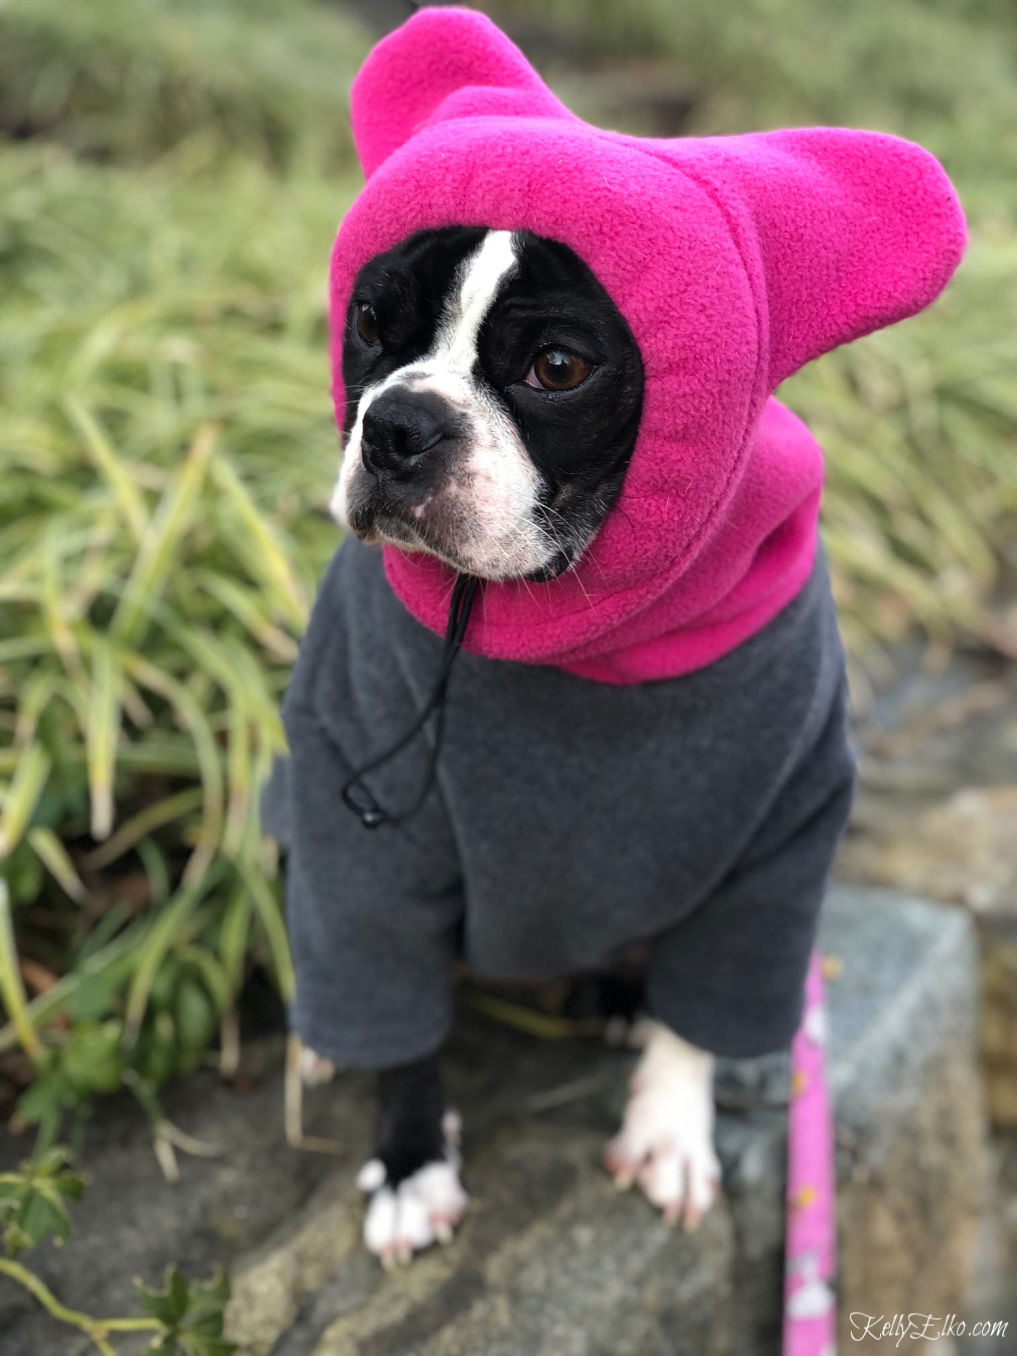 The perfect hoodie dog coat for cold winter days kellyelko.com #bostonterrier #frenchbulldog #dogclothes #dogsweater #kellyelko #snorf